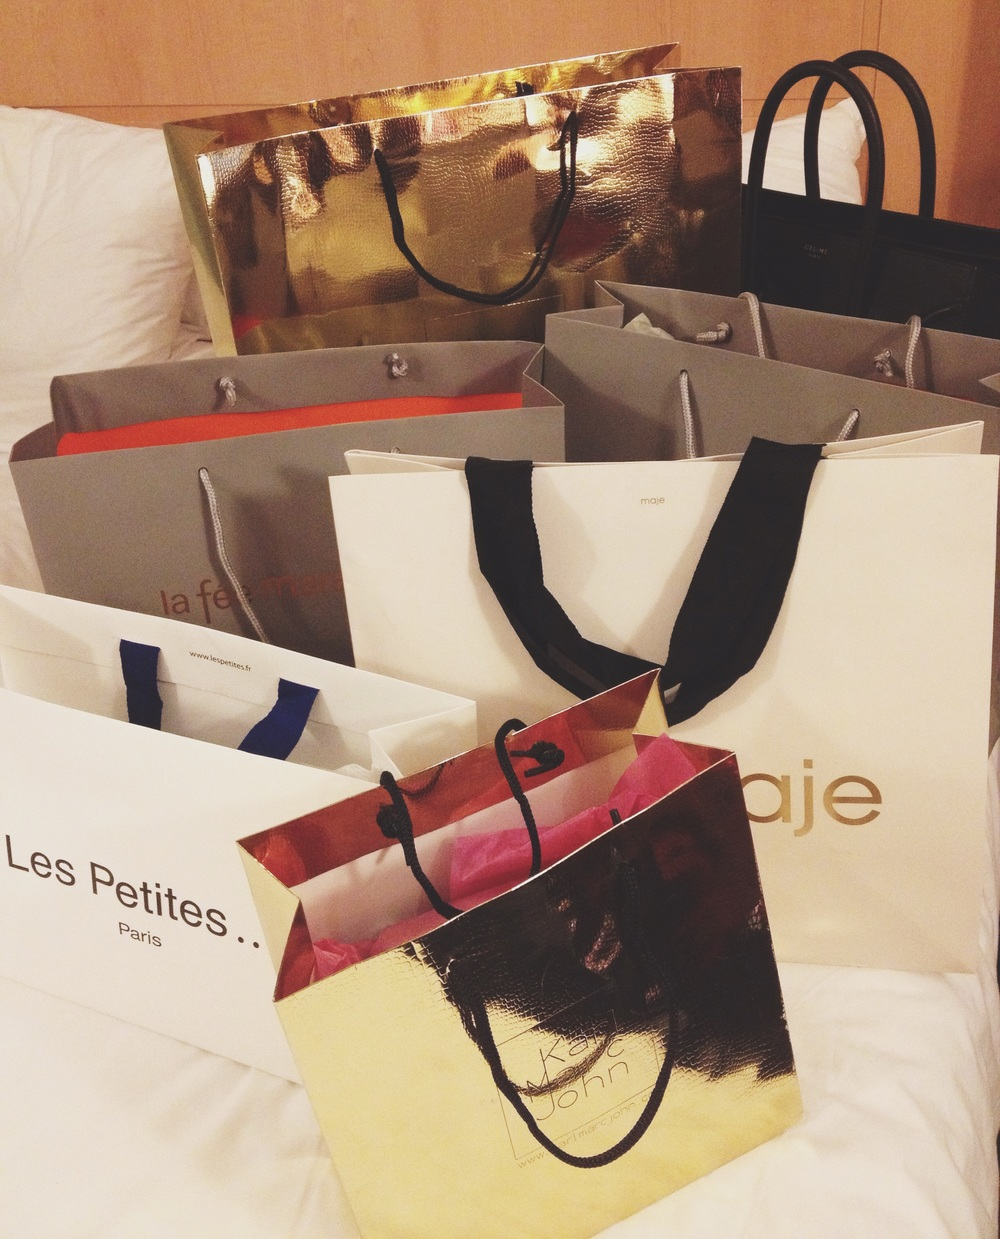 We did a lot of shopping. Maybe too much, but it's not everyday I'm in Paris!